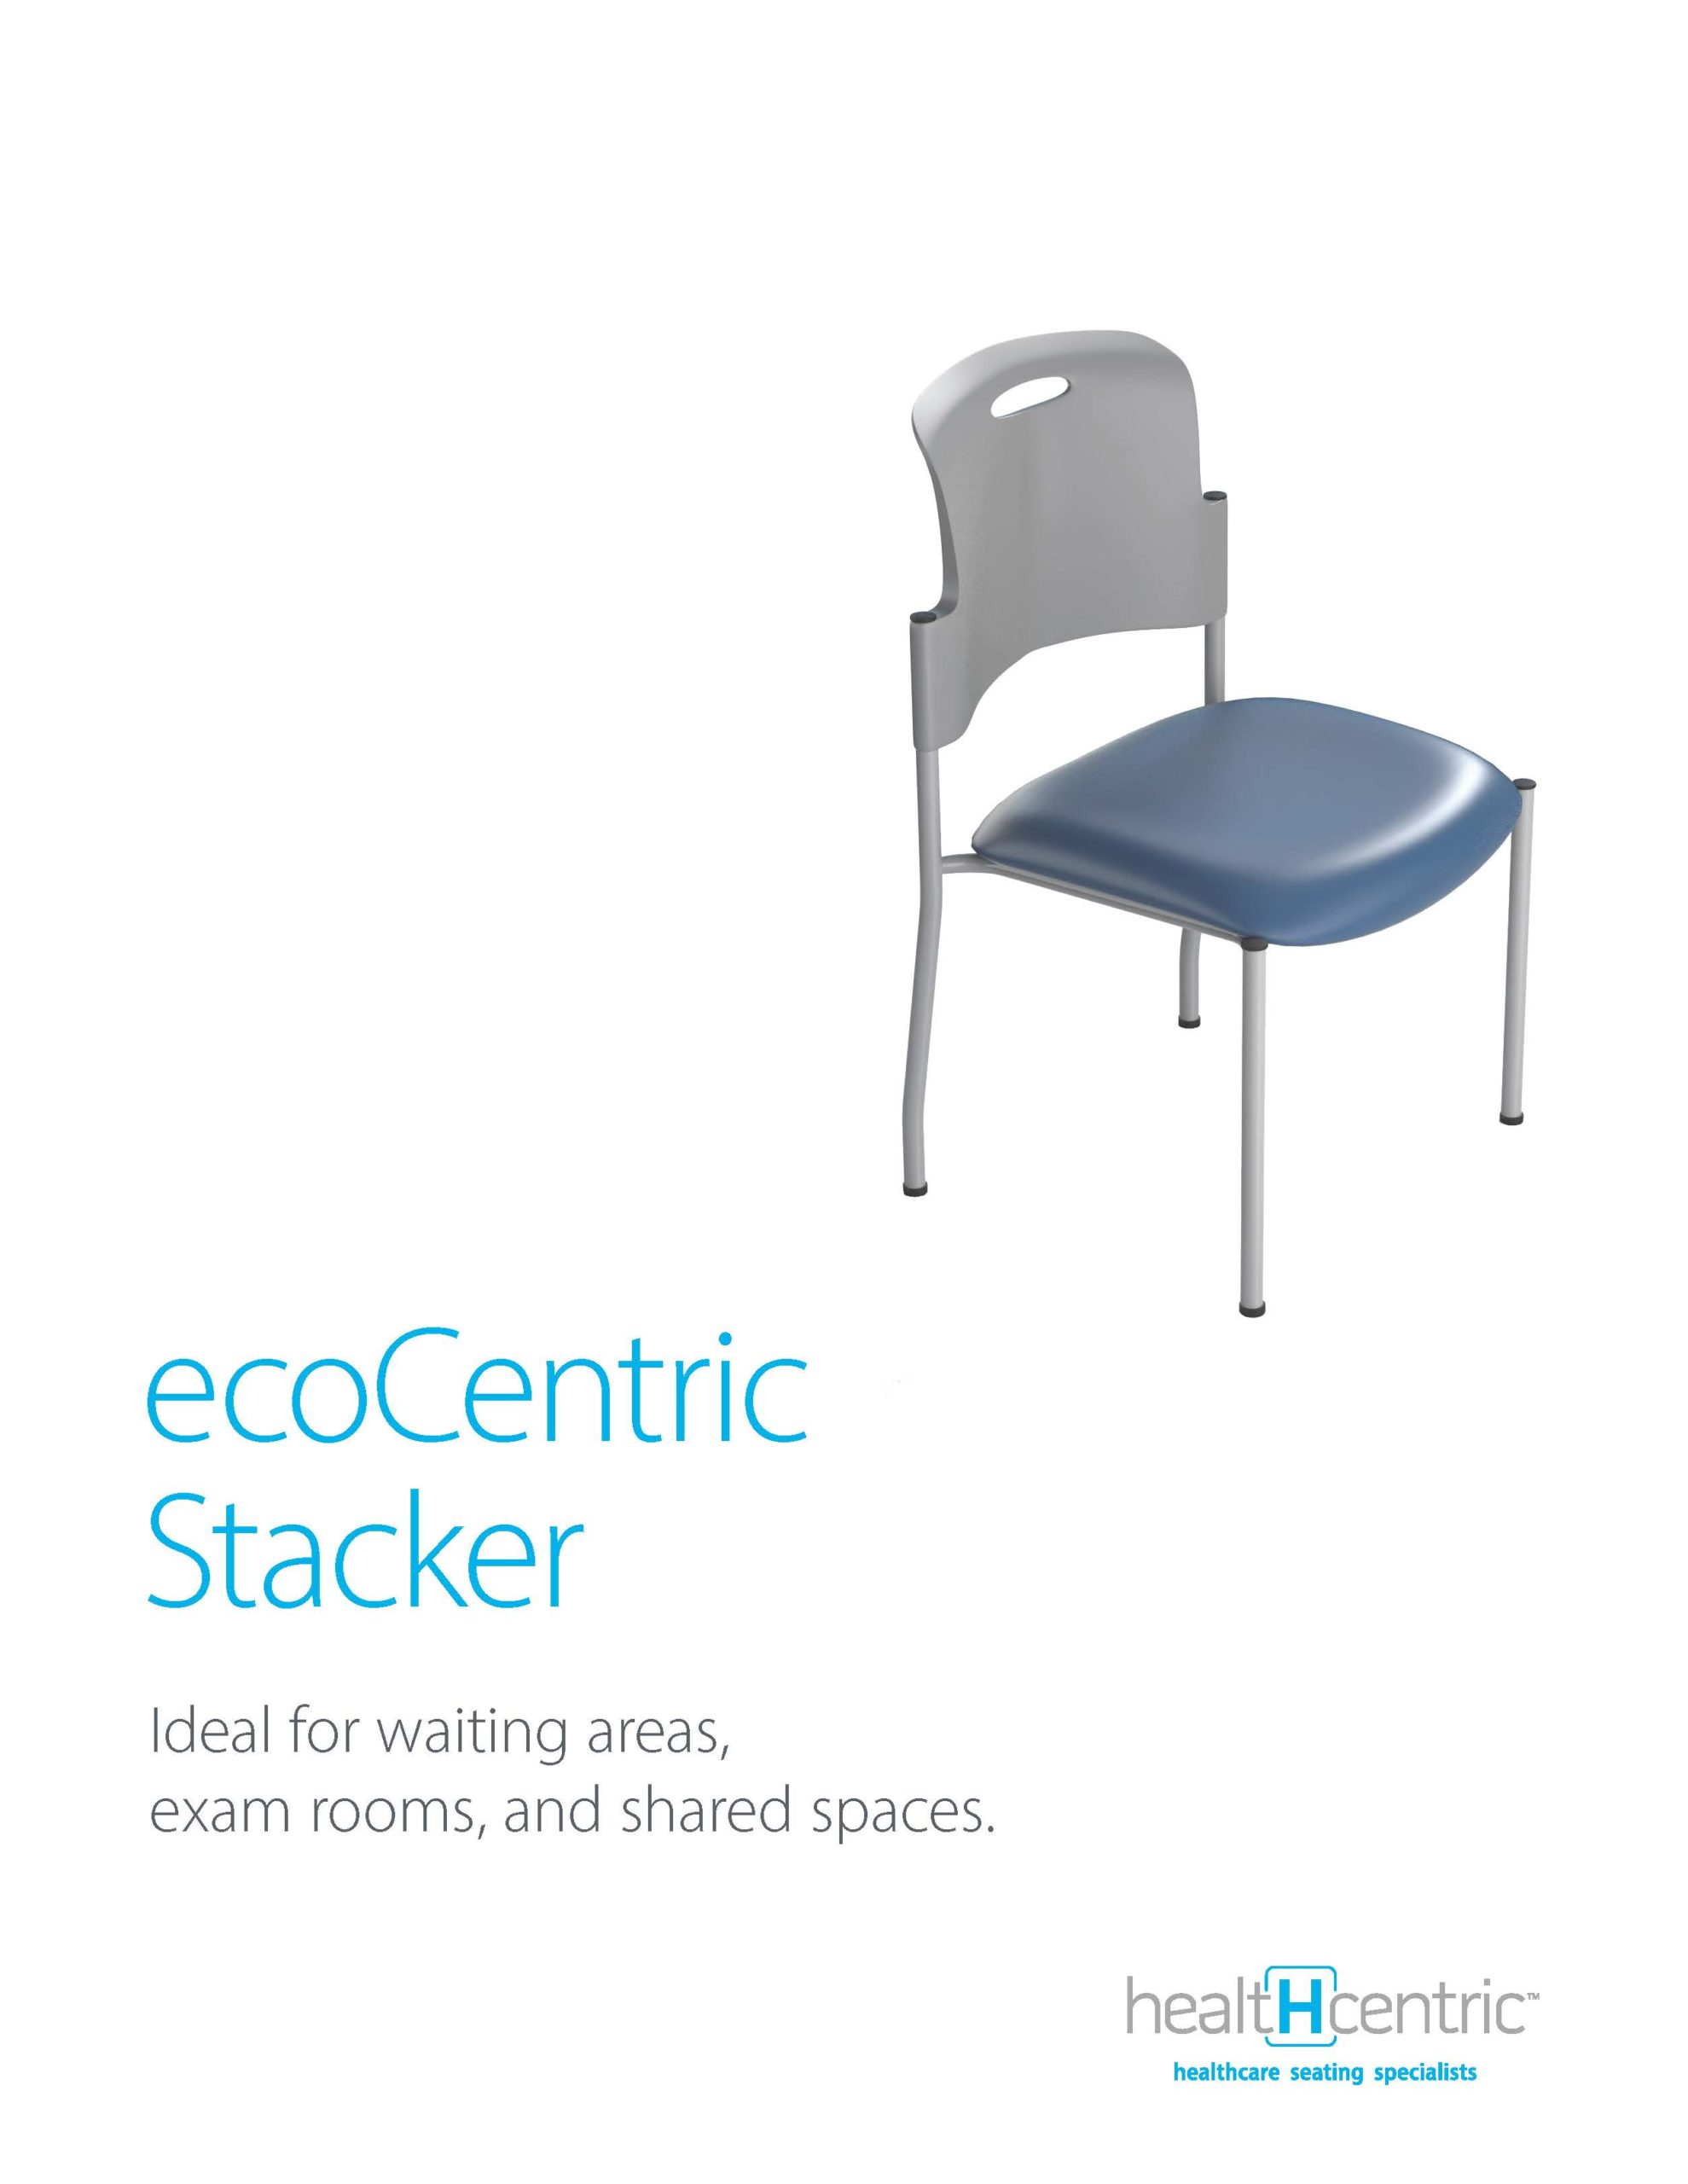 ecoCentric Stacker